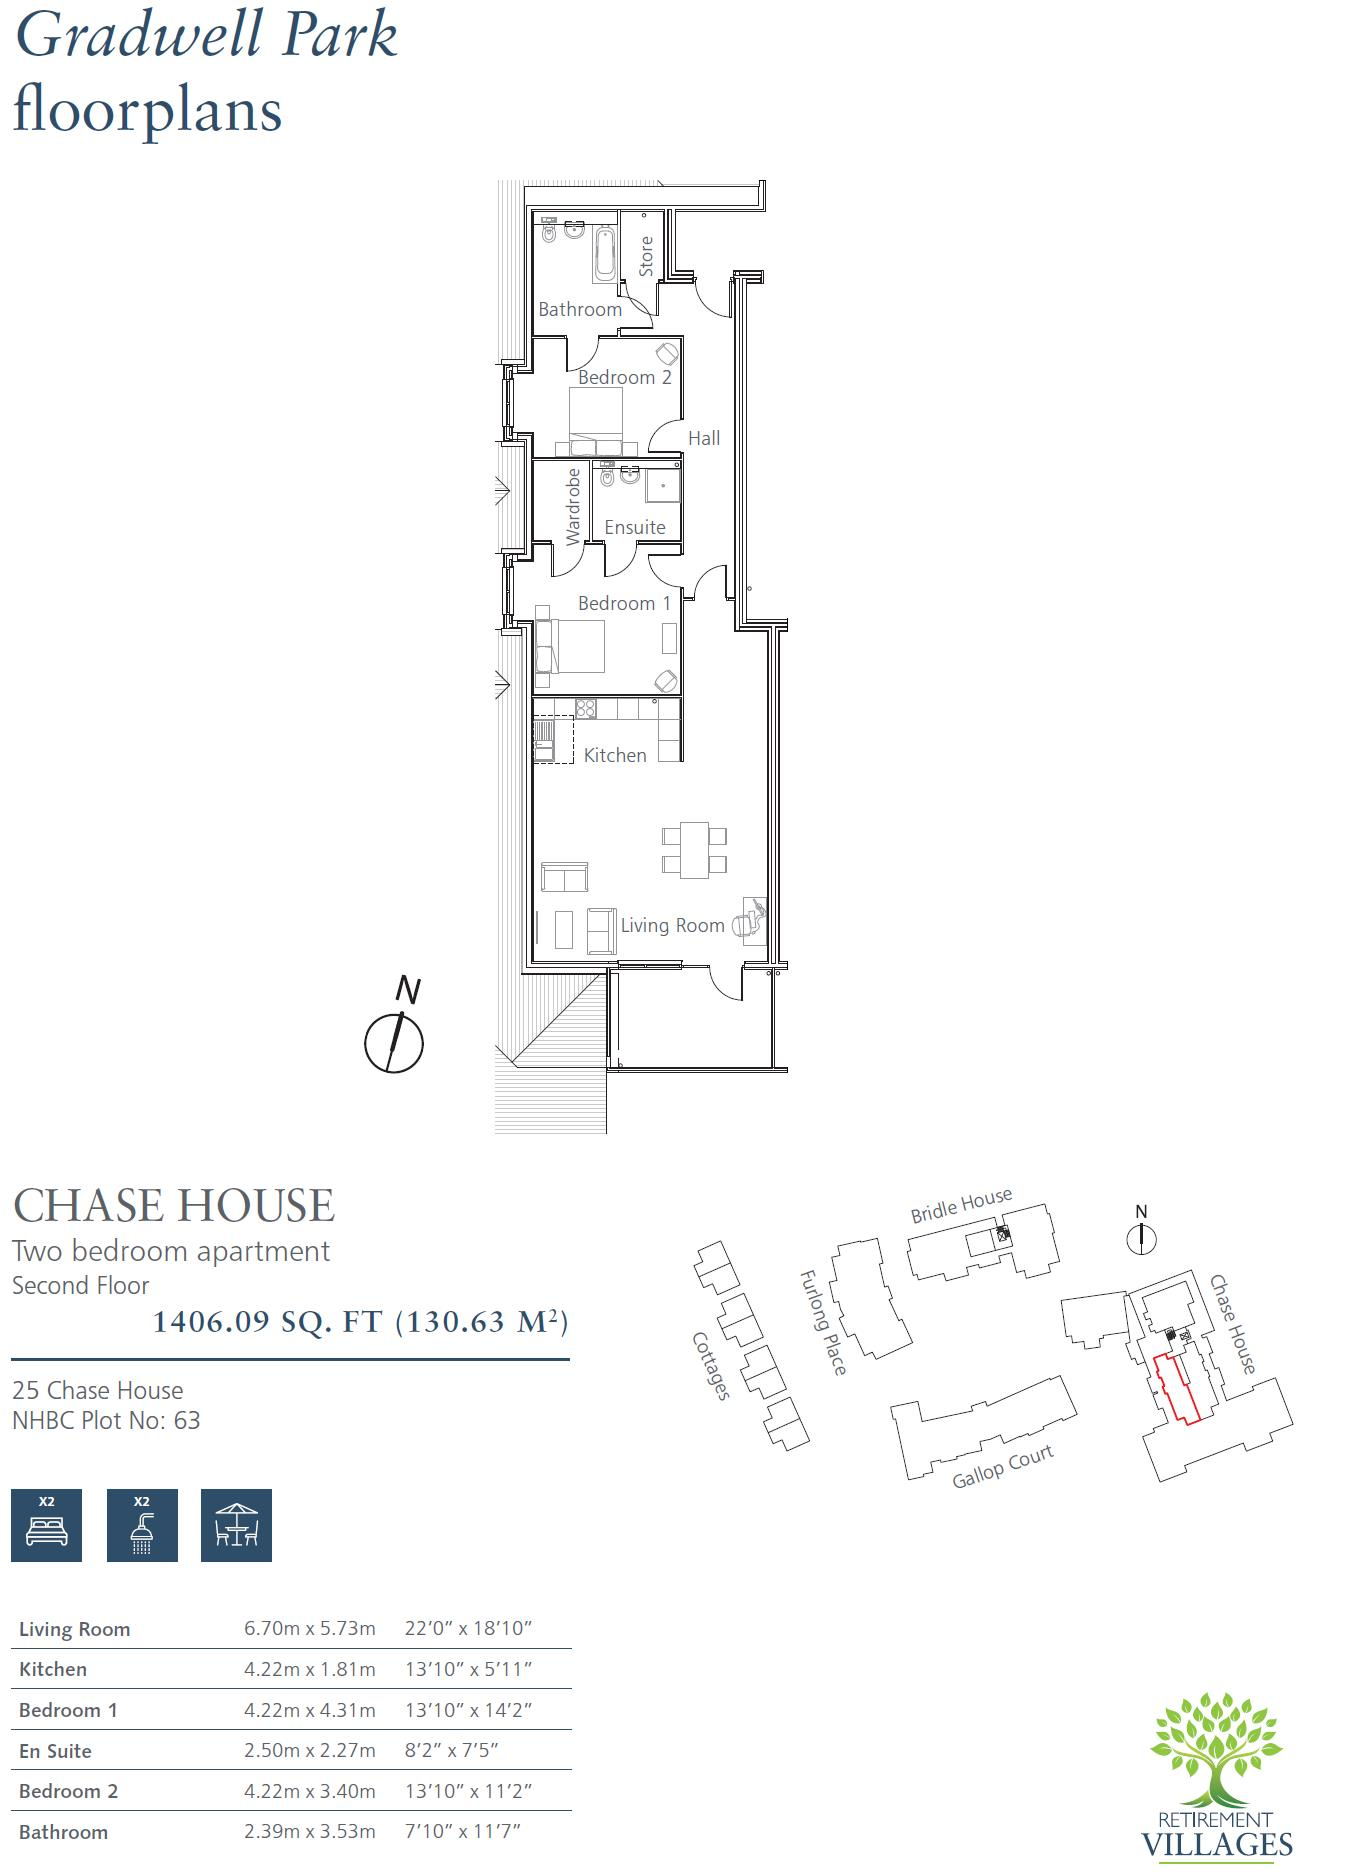 New Build, 25 Chase House Floorplan